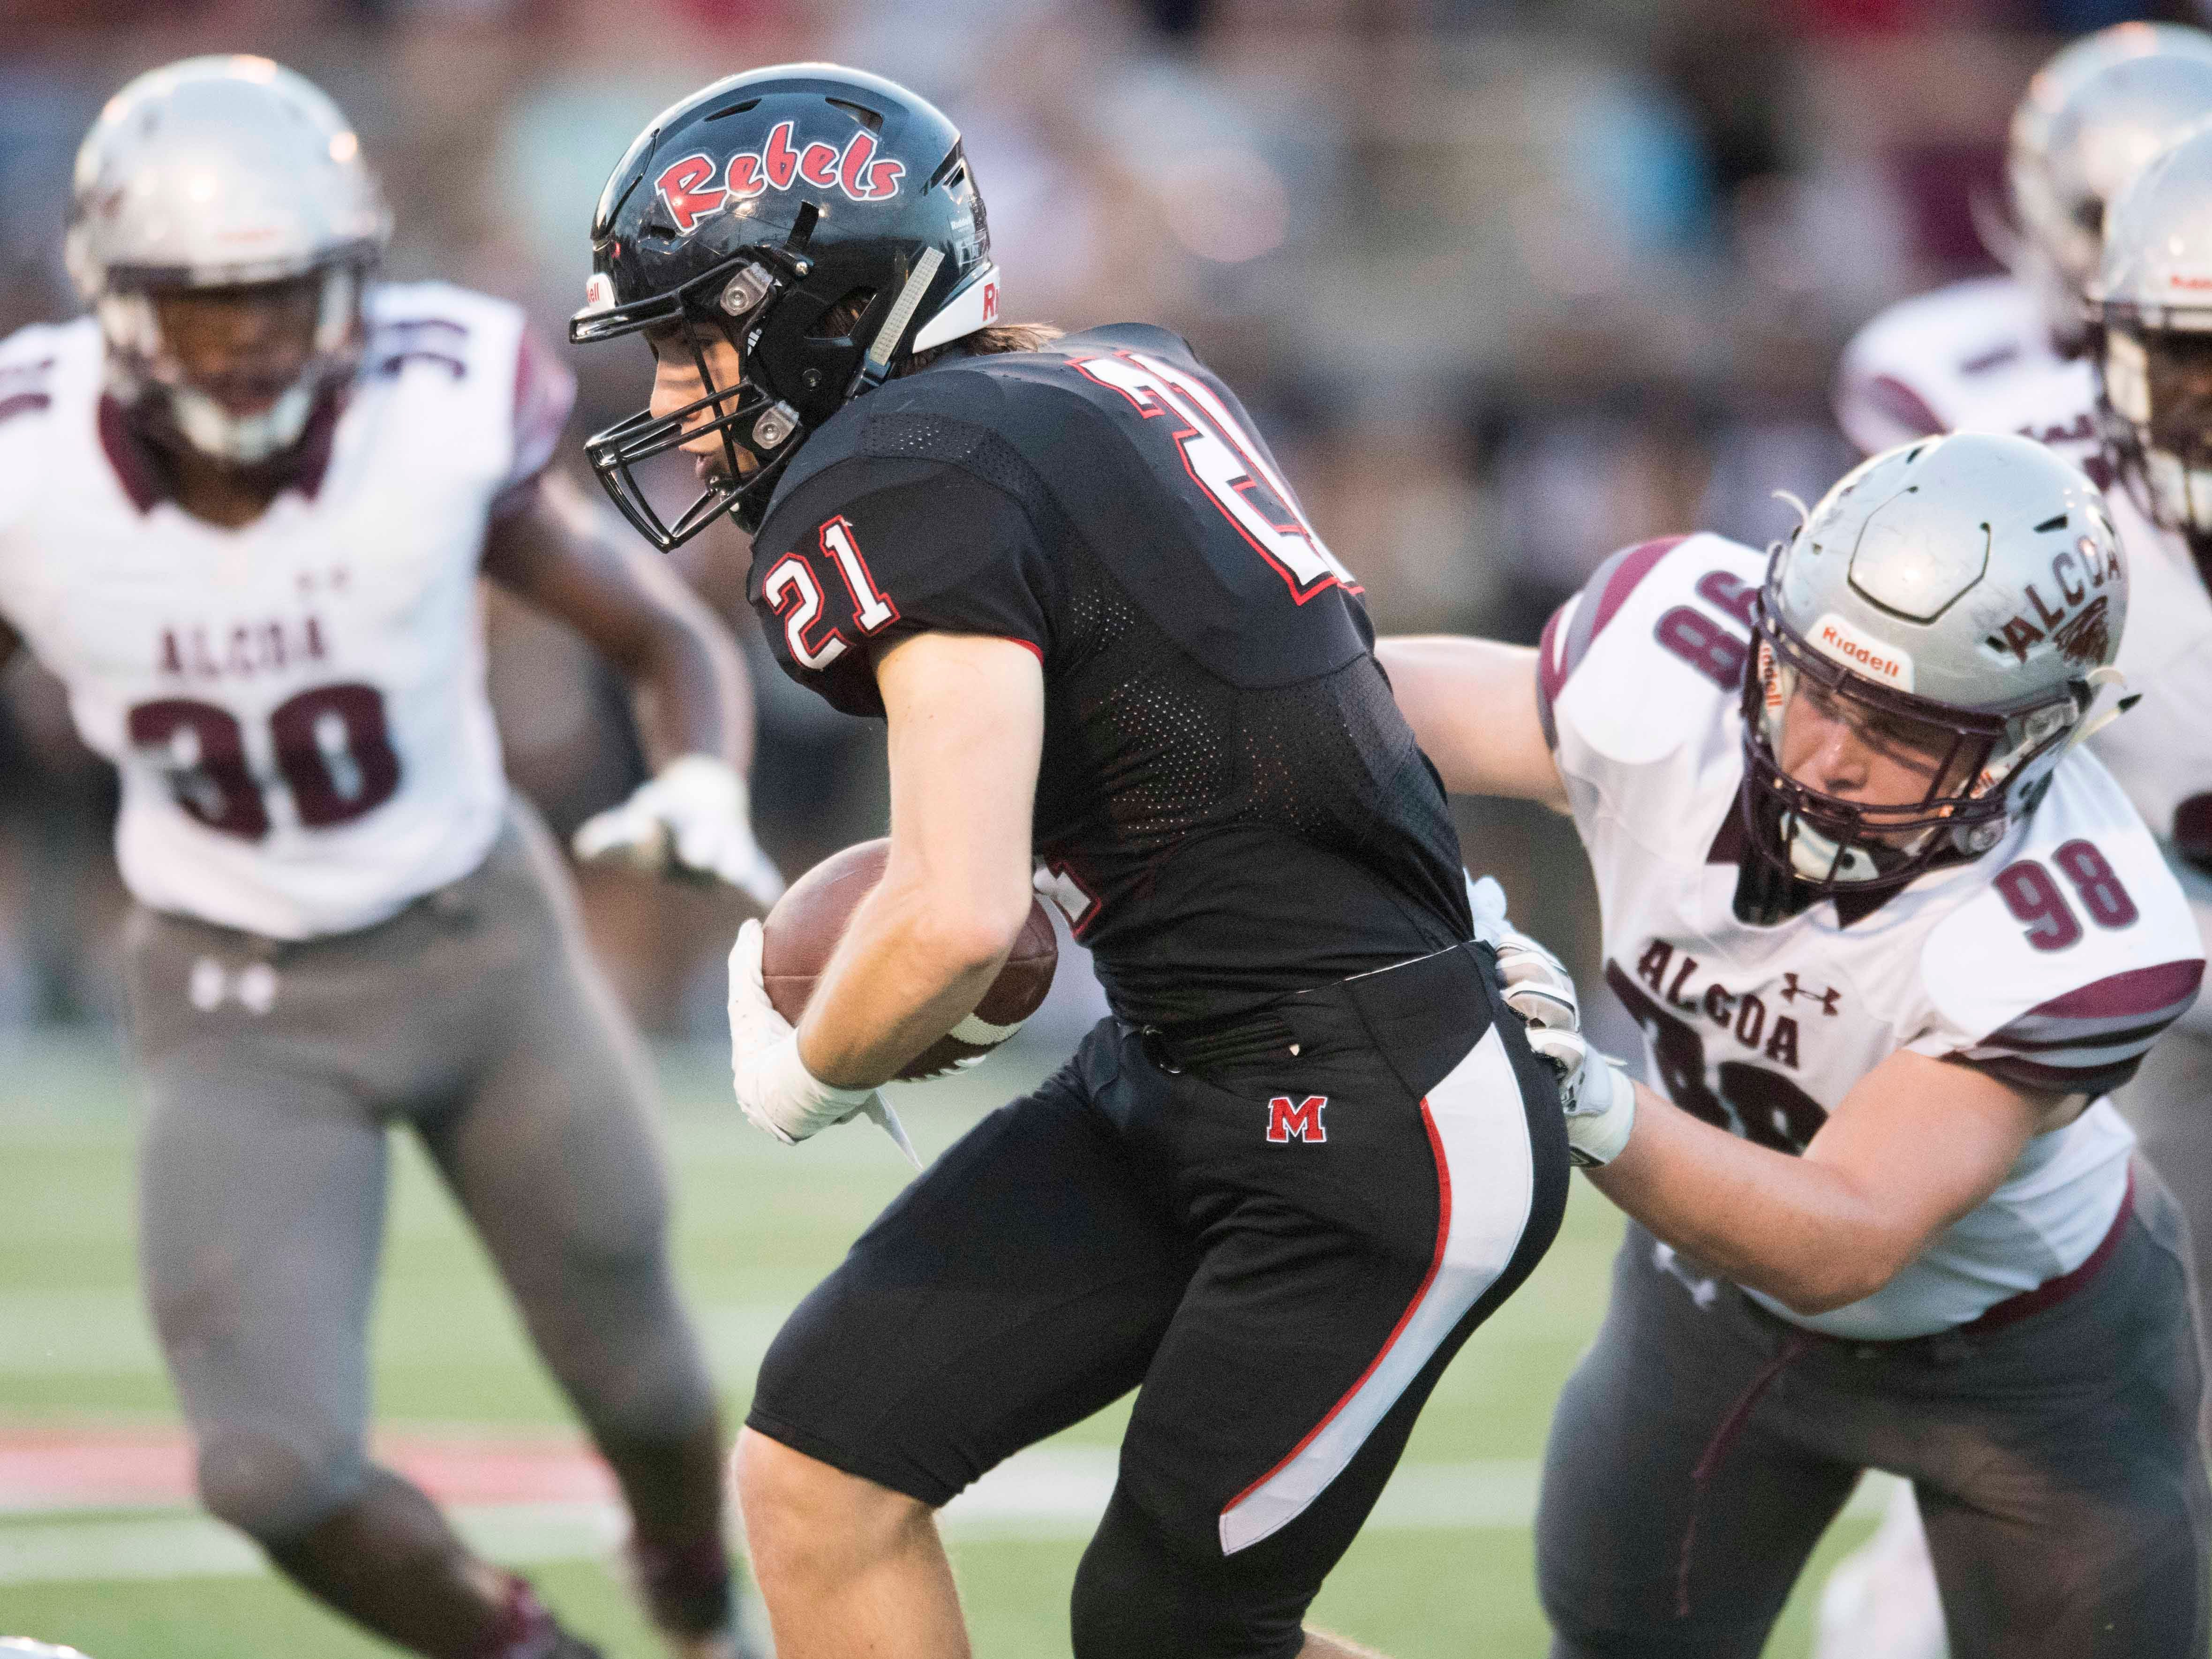 Maryville's Bryson Teffeteller (21) is grabbed by Alcoa's Grey Carroll (98) in the football game at Maryville on Friday, September 7, 2018.